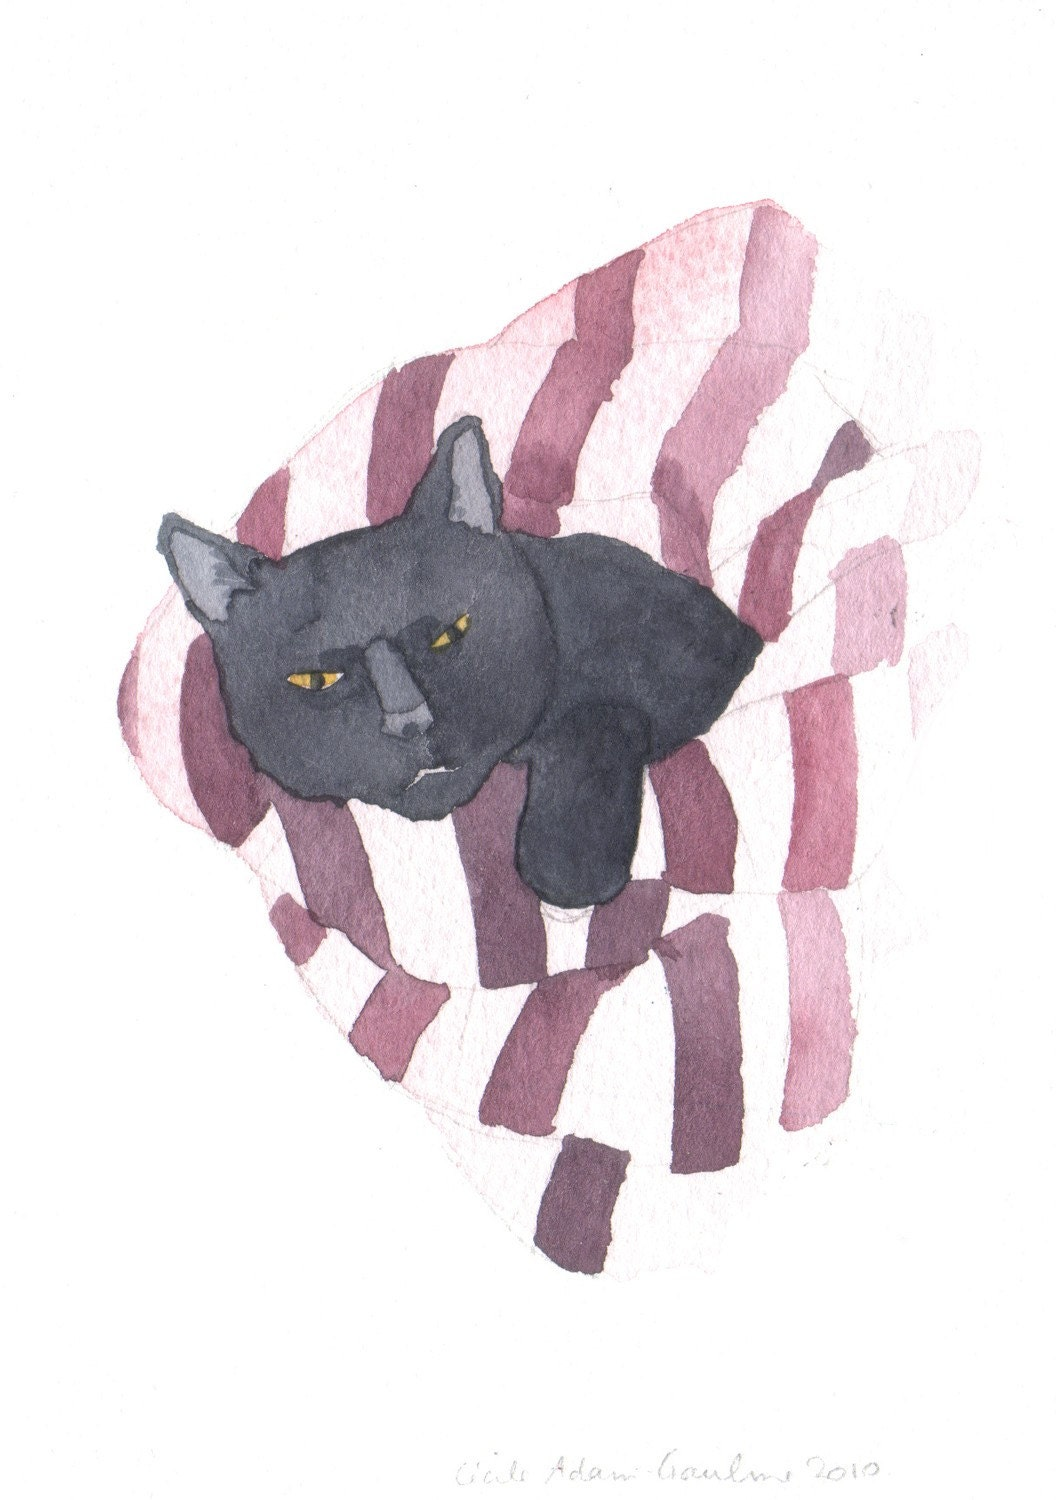 Black Cat in Pinkish Red Stripes Original Watercolor Painting